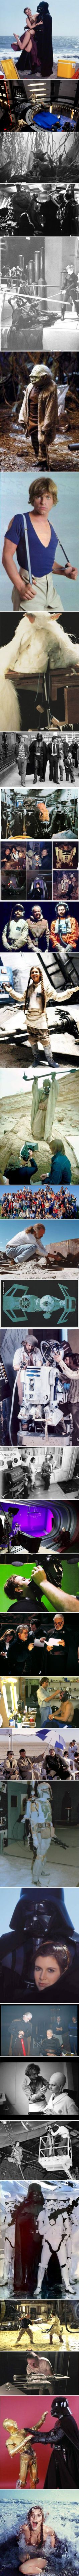 34 Star Wars Behind The Scene Photos You Might Not Have Seen Before (Part 2)